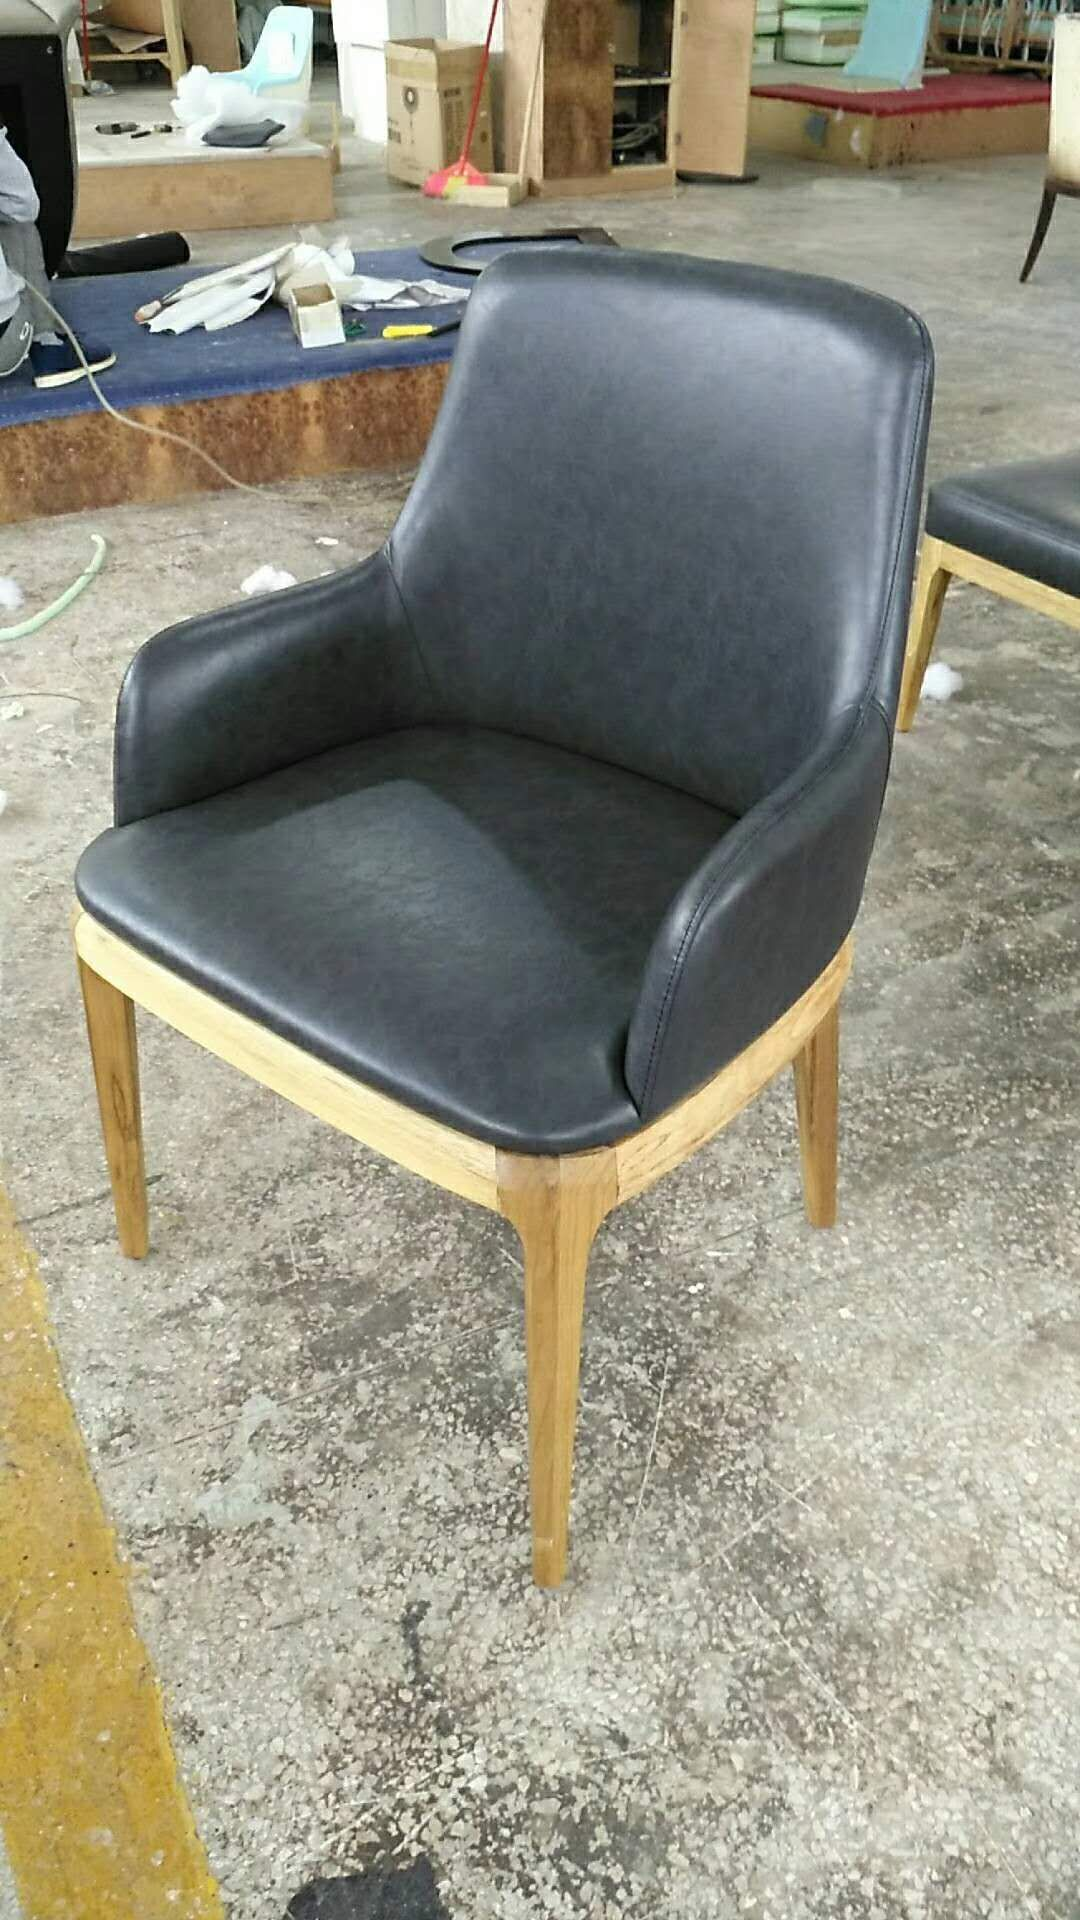 Custom Made Throne Chairs Recliner On Wheels Dining Chair By Artech Furniture